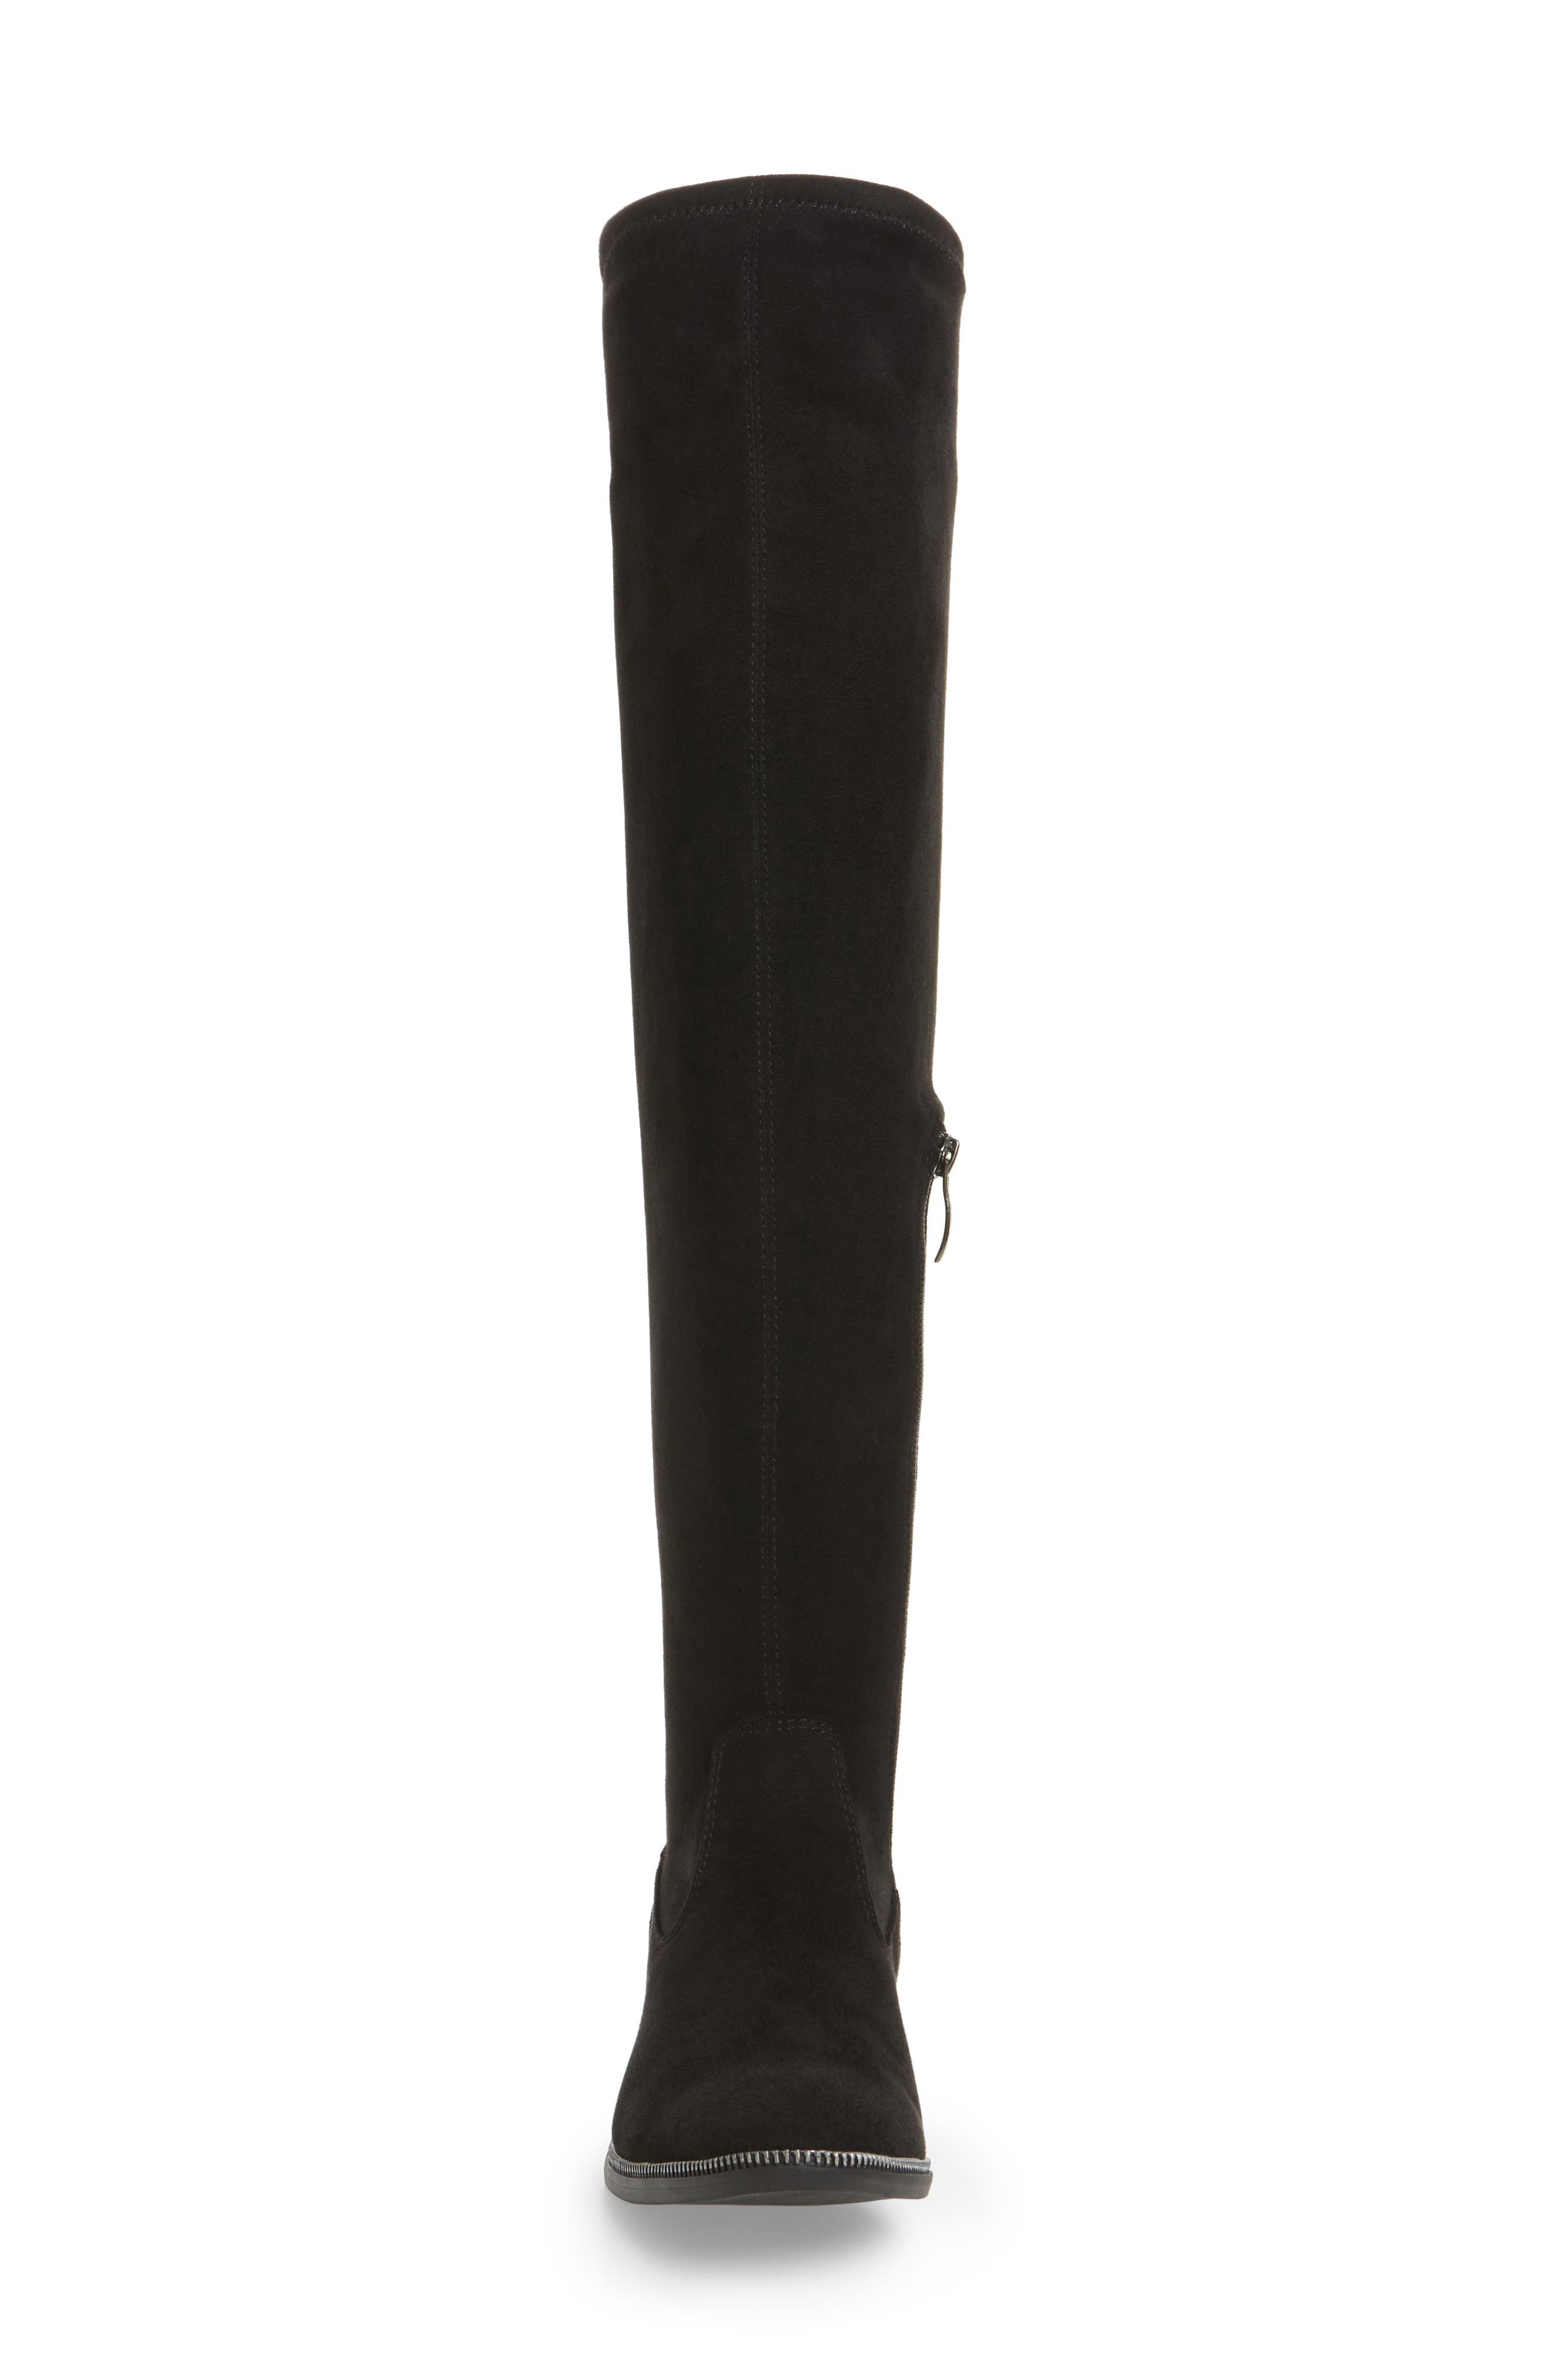 Phanie Over the Knee Stretch Boot,                             Alternate thumbnail 4, color,                             001